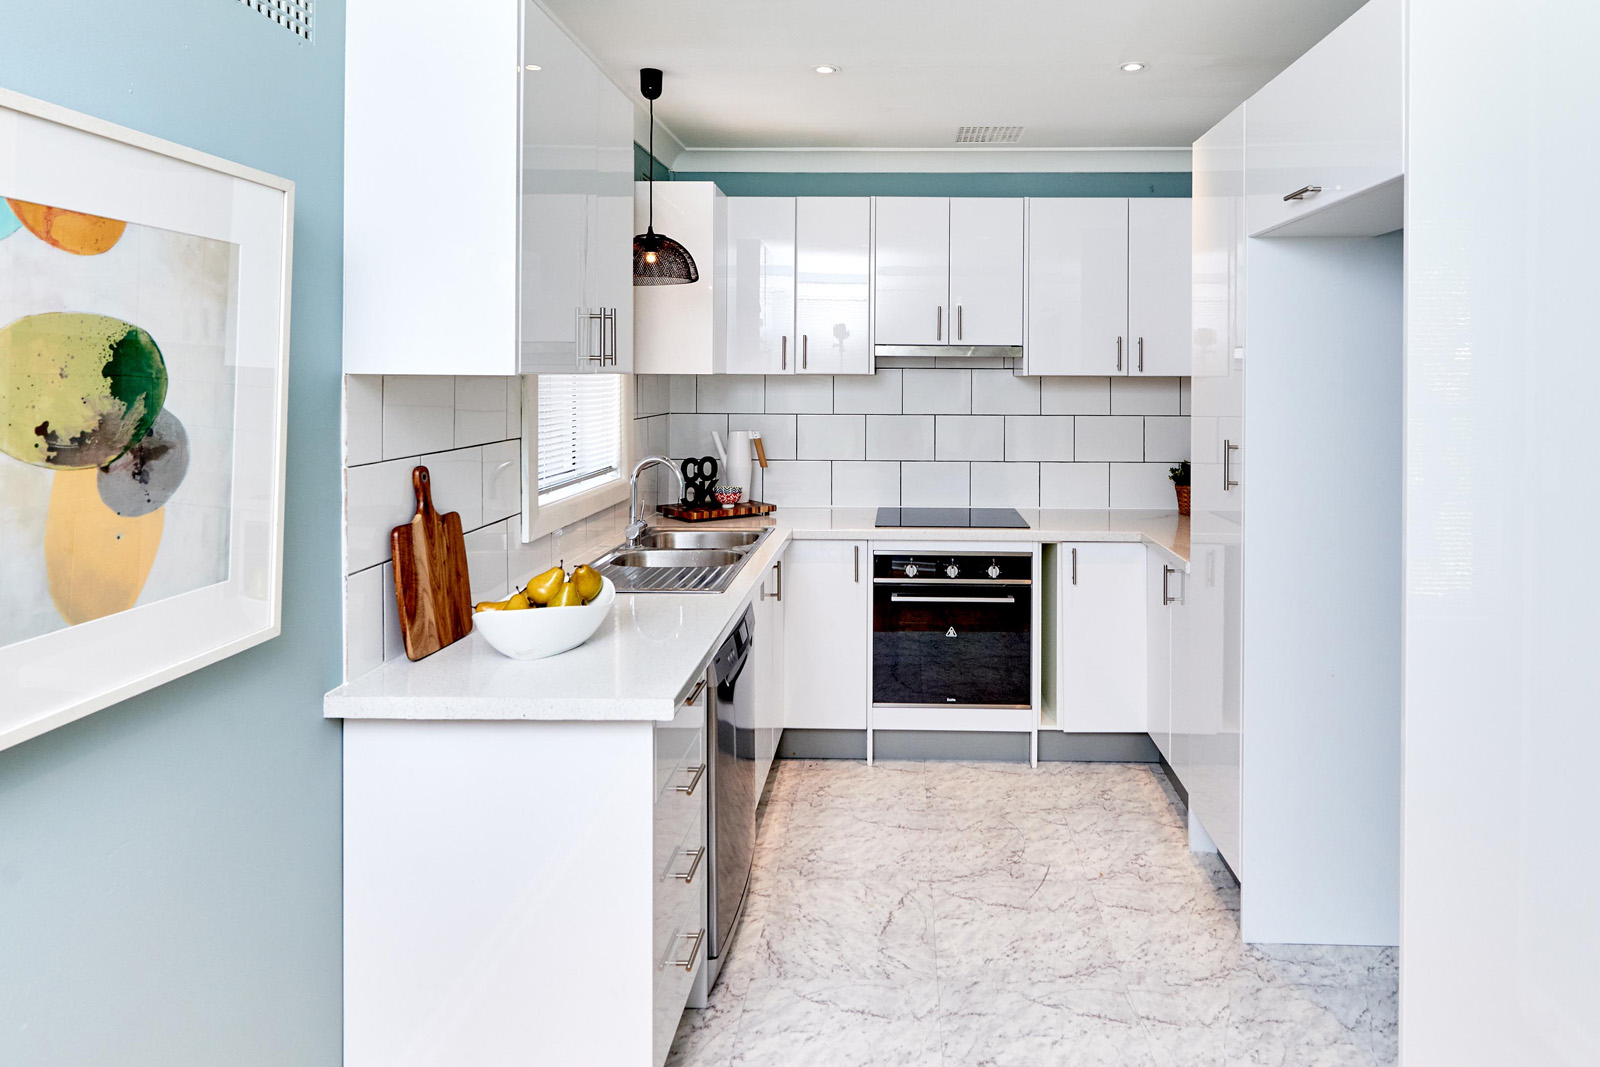 Cherie-Barber_Renovating-For-Profit_DIY-vs-Pros_flatpack-kitchen